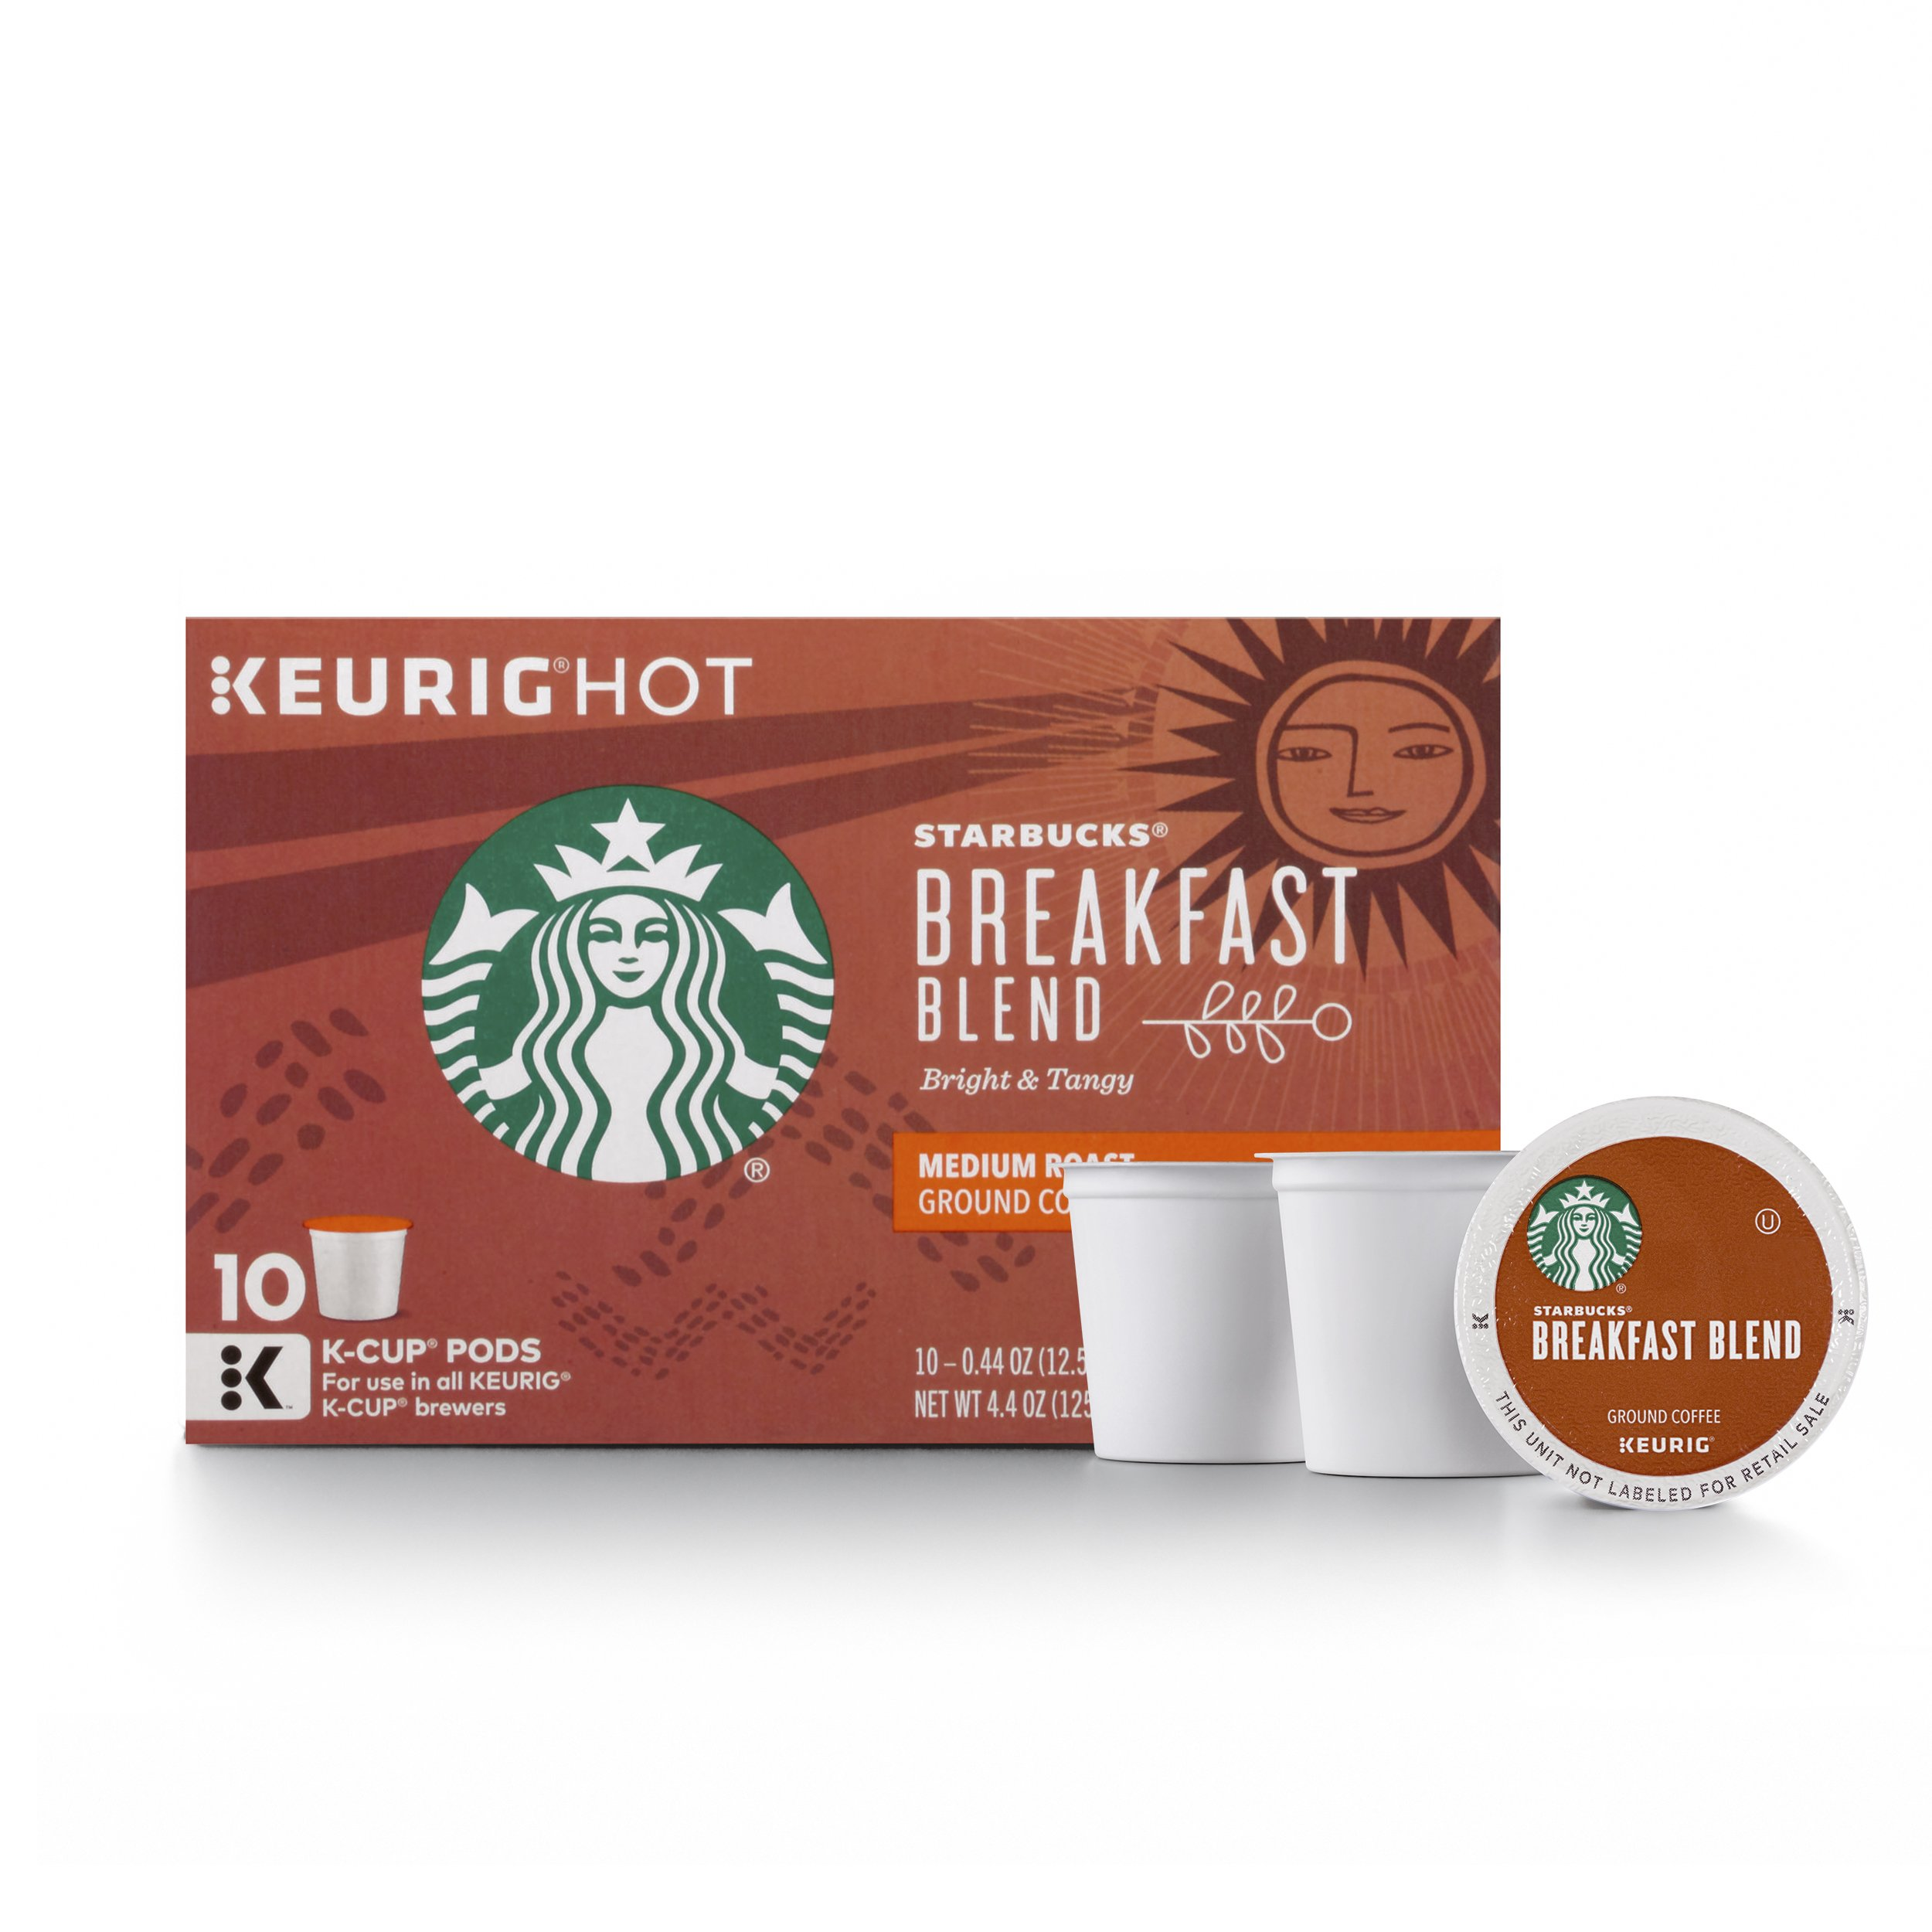 Starbucks Breakfast Blend Medium Roast Single Cup Coffee for Keurig Brewers, 6 Boxes of 10 (60 Total K-Cup pods)